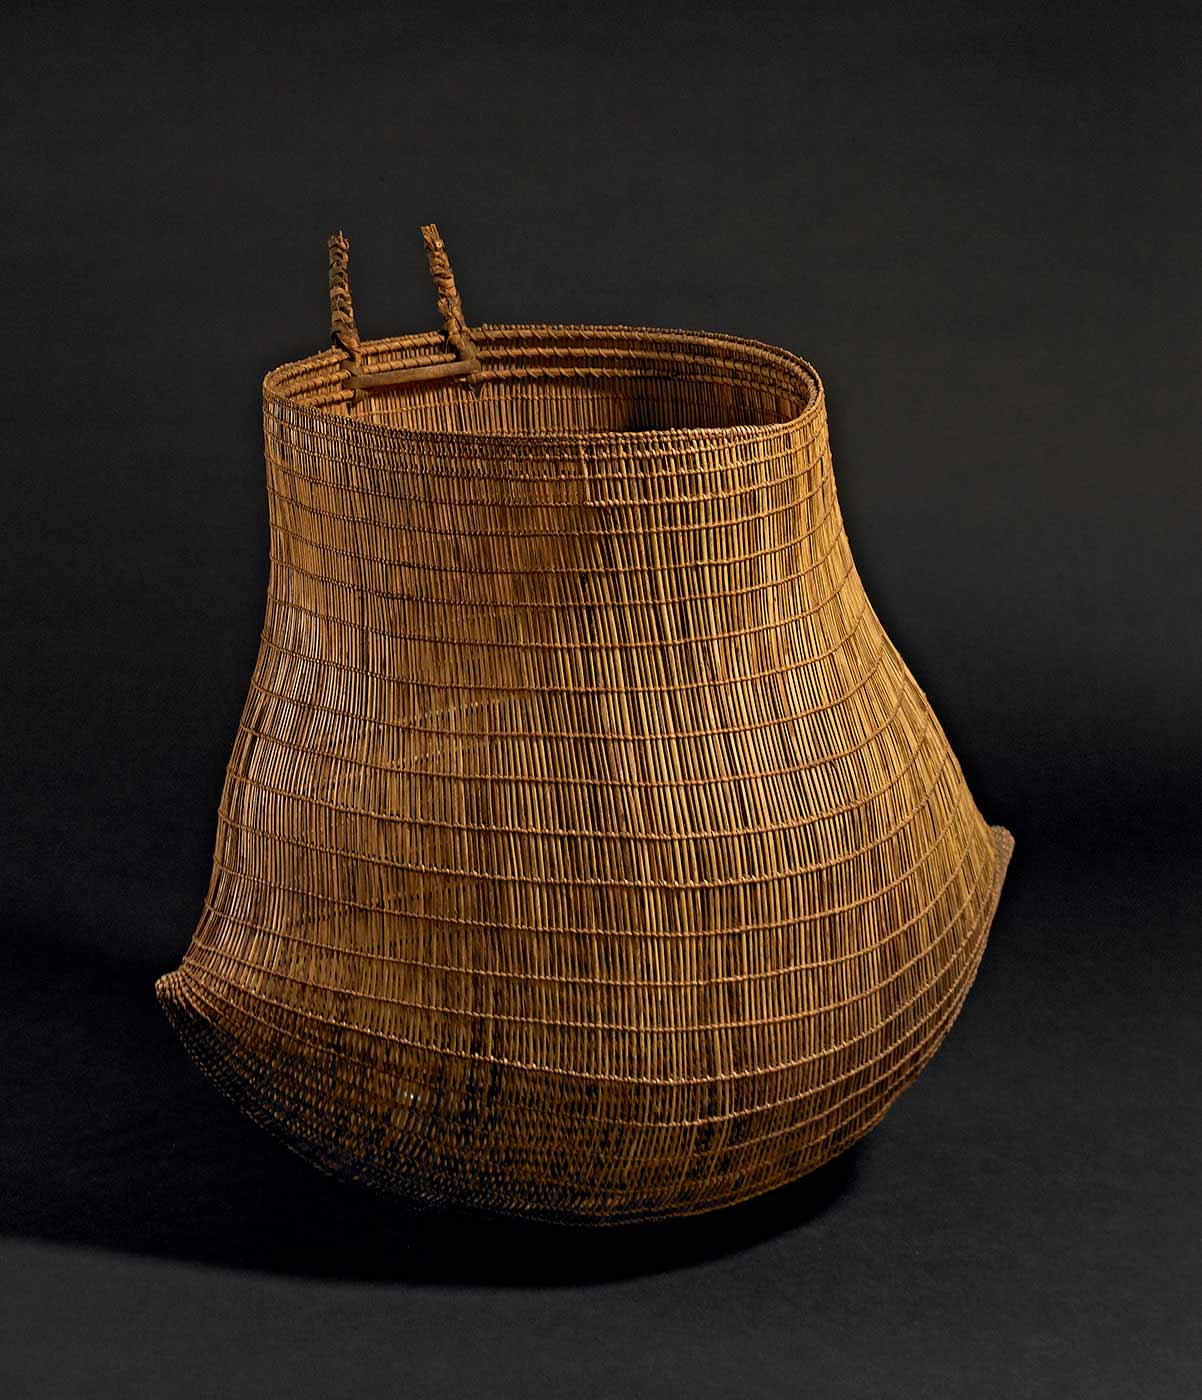 A woven basket. - click to view larger image